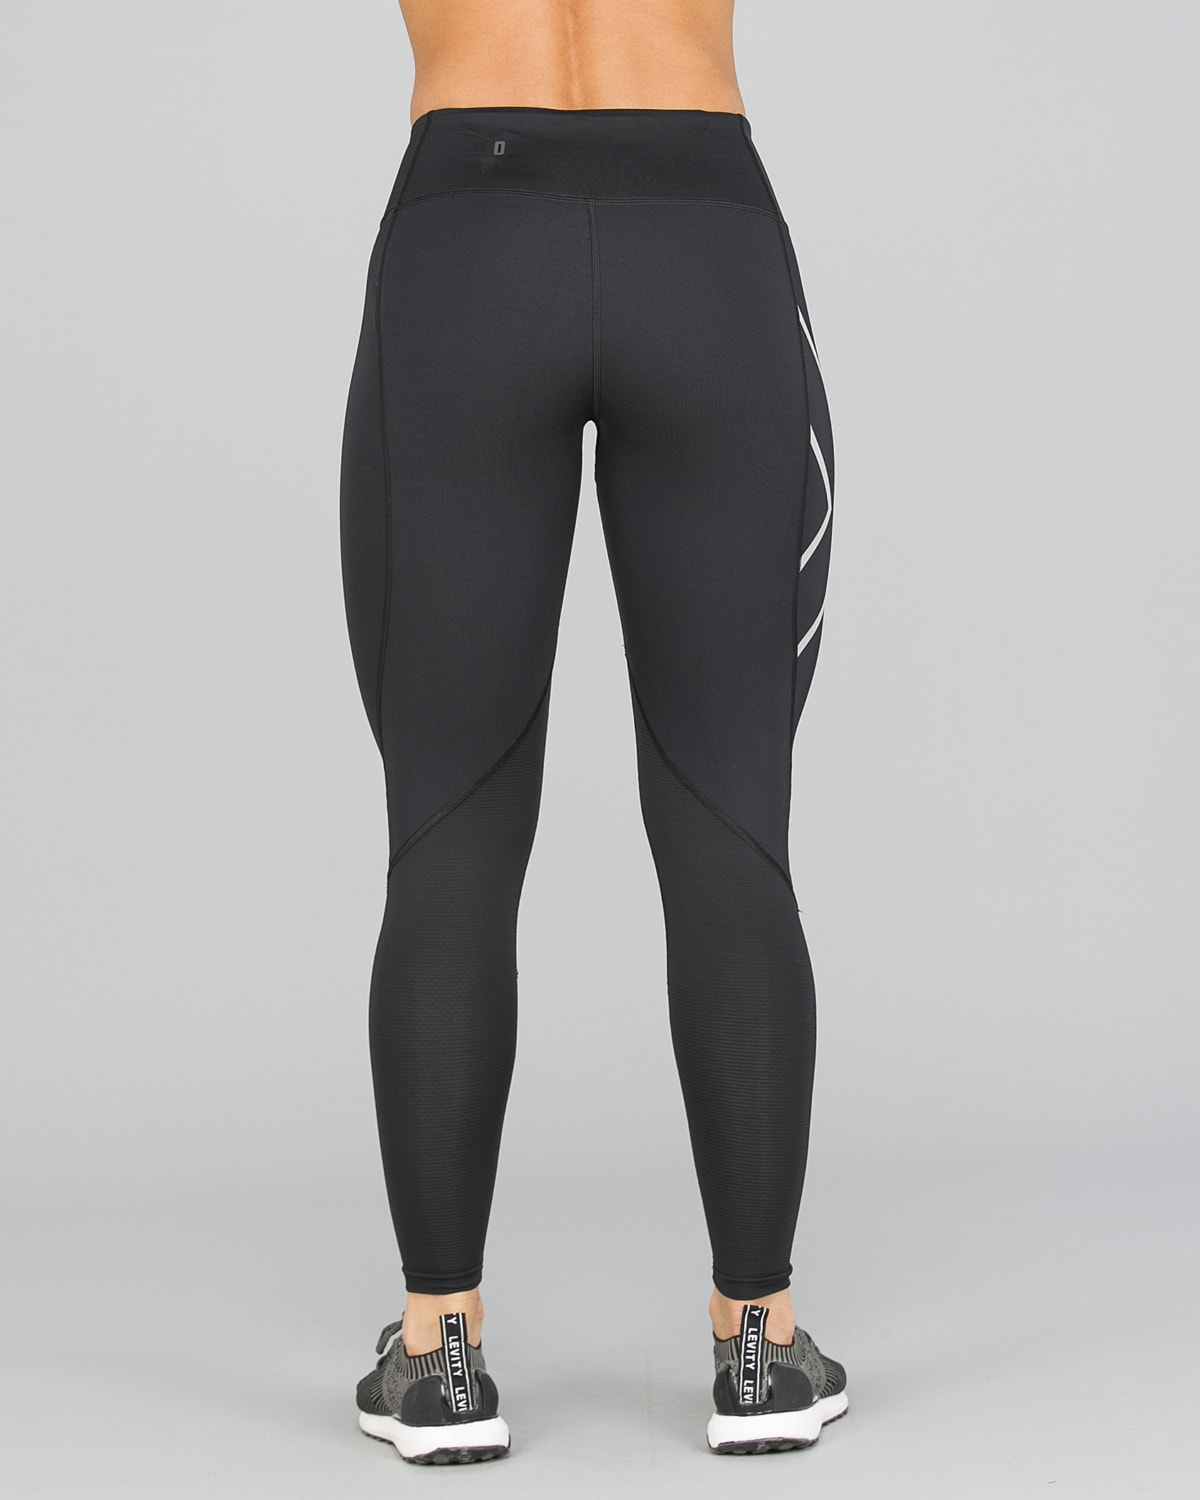 2XU Run Mid-Rise Dash Comp Tights Women – Black:Silver Reflective10